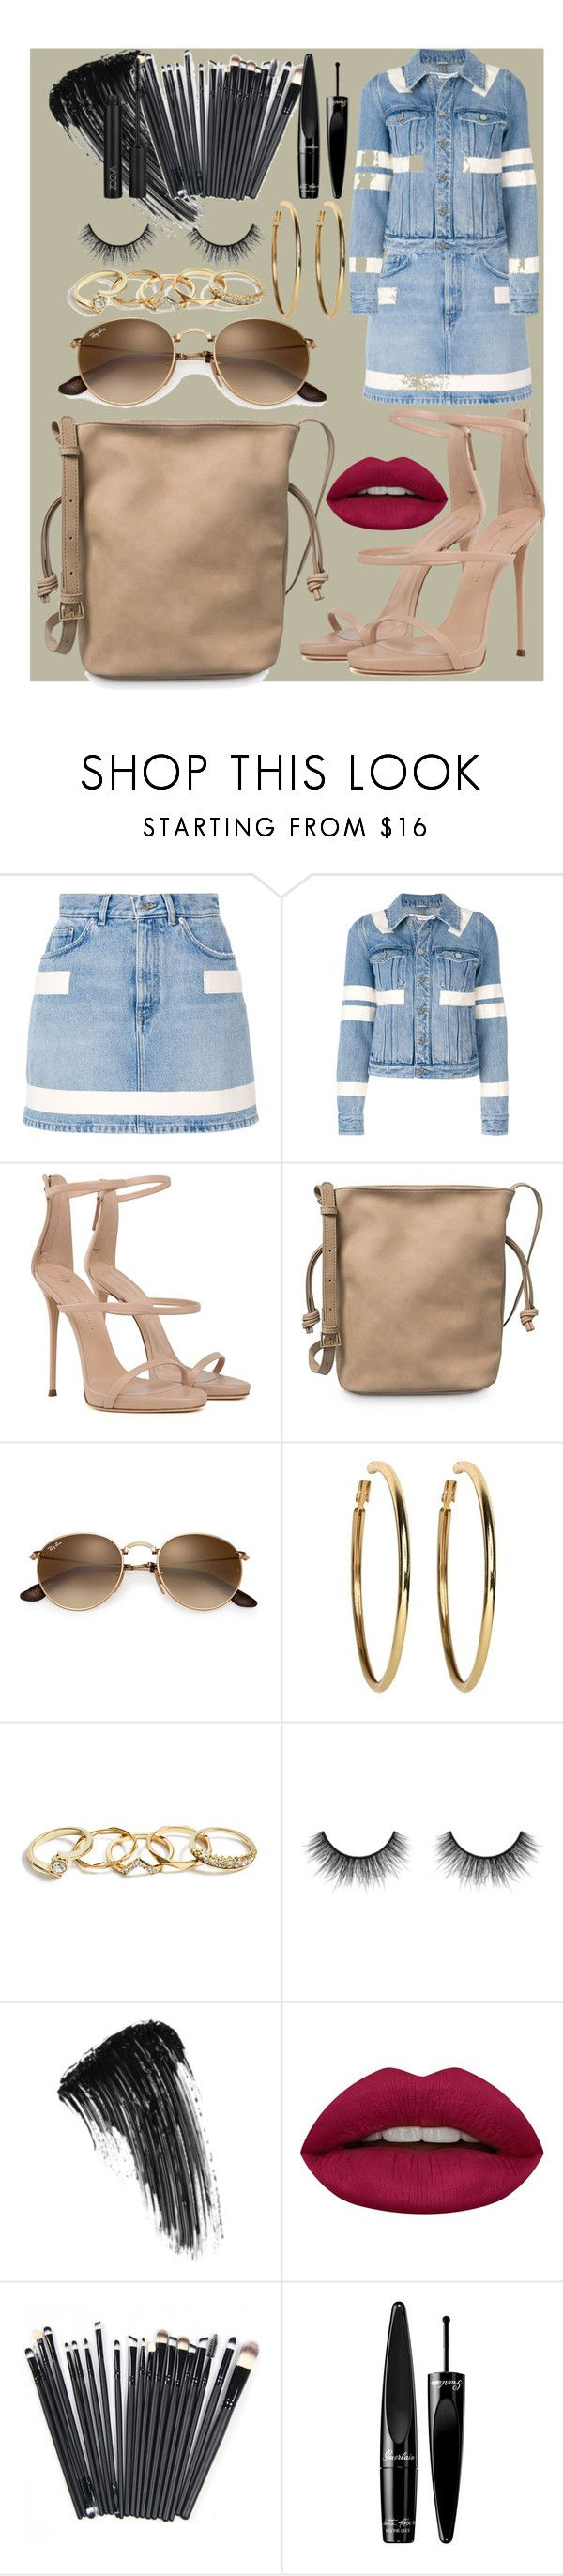 """universal"" by samalbrycht on Polyvore featuring Givenchy, Giuseppe Zanotti, Kenneth Jay Lane, GUESS, Velour Lashes, Eyeko, Huda Beauty, Guerlain and ZOEVA"